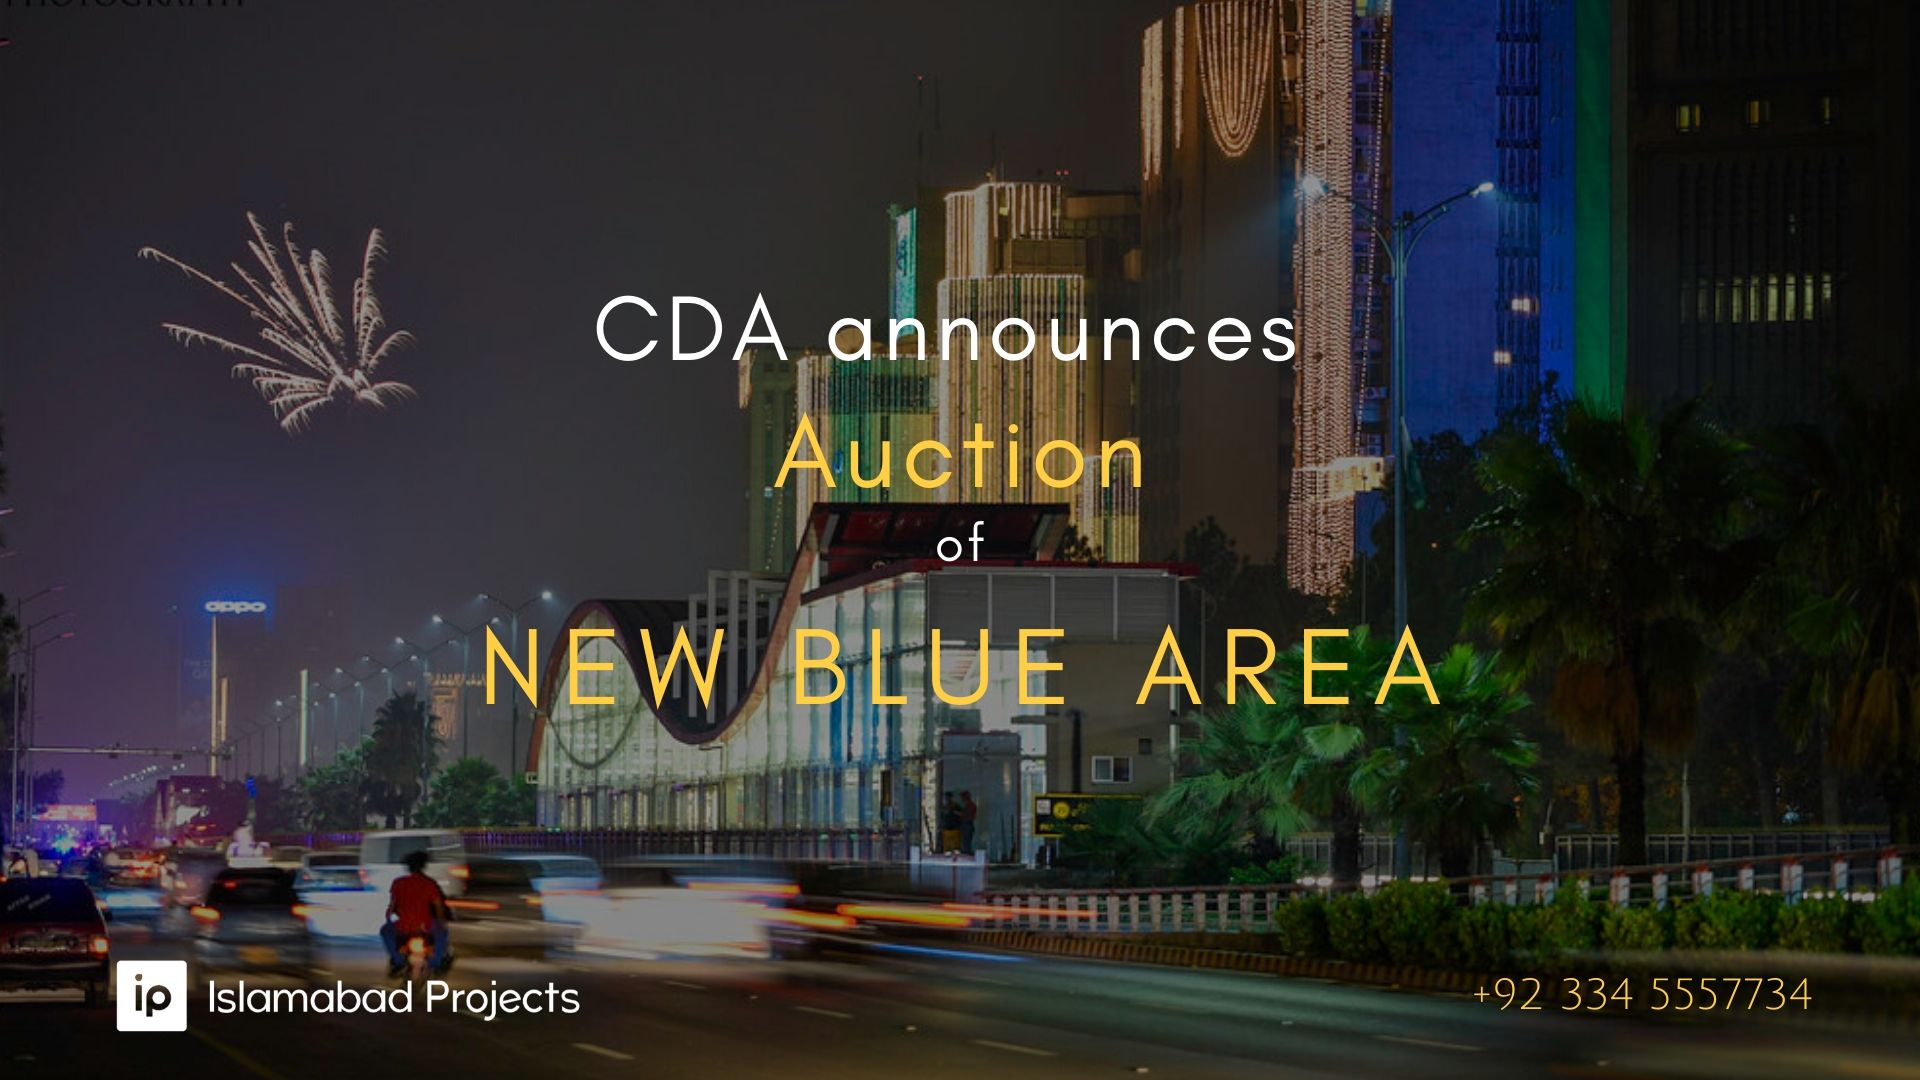 New Blue Area Islamabad – All About the Auction